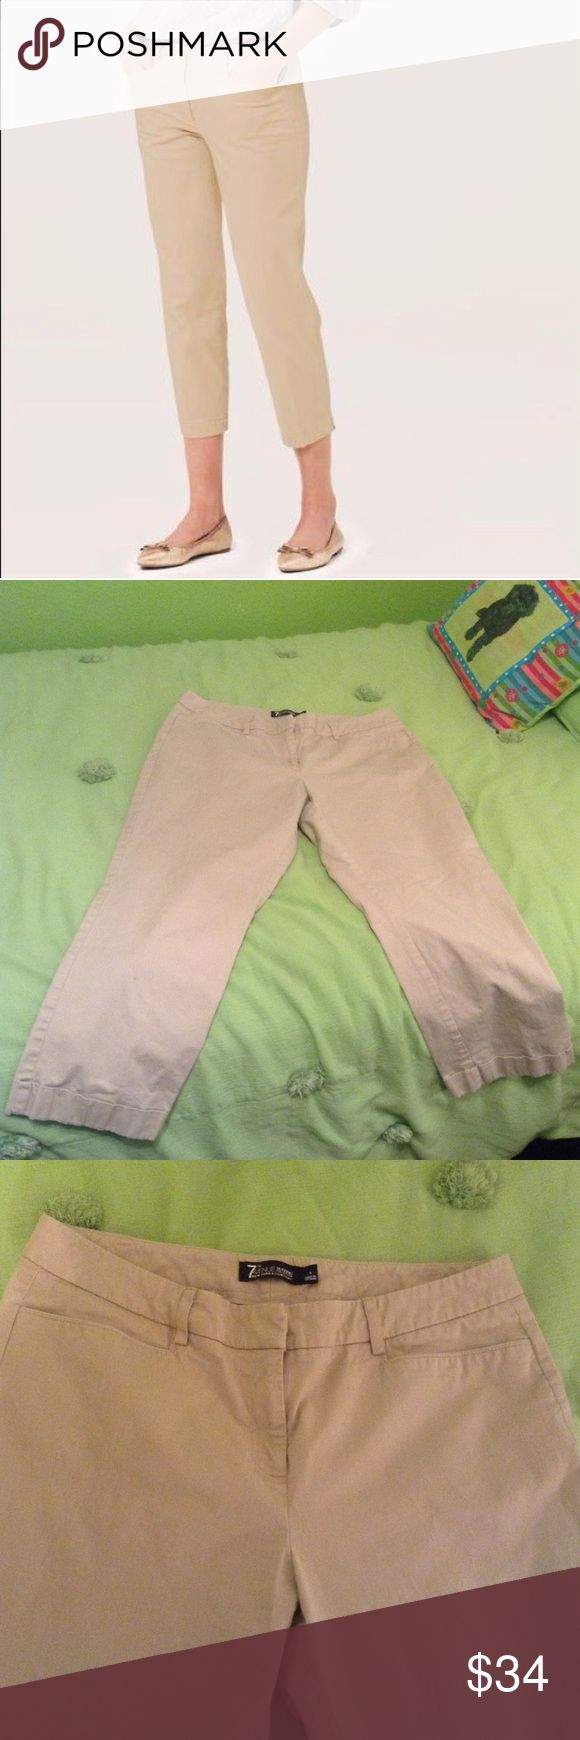 Khaki Capri Pants A nice pair of khaki Capri style pants. Only worn once or twice. In great condition!!! New York & Company Pants Capris